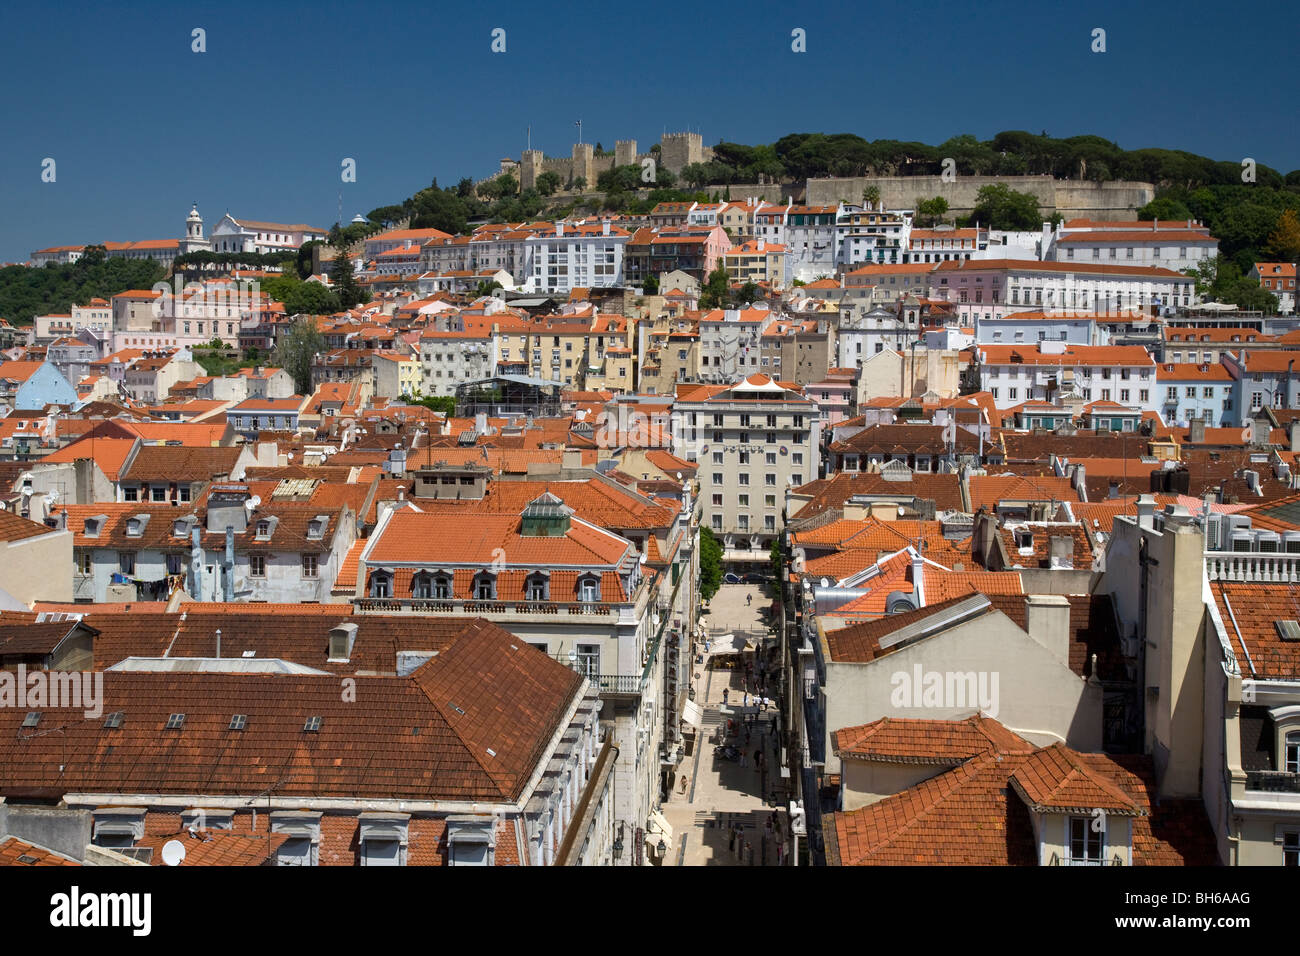 High View over city rooftops and Baxia district of Lisbon, Portugal  towards Castelo de sao jorge which dominates - Stock Image